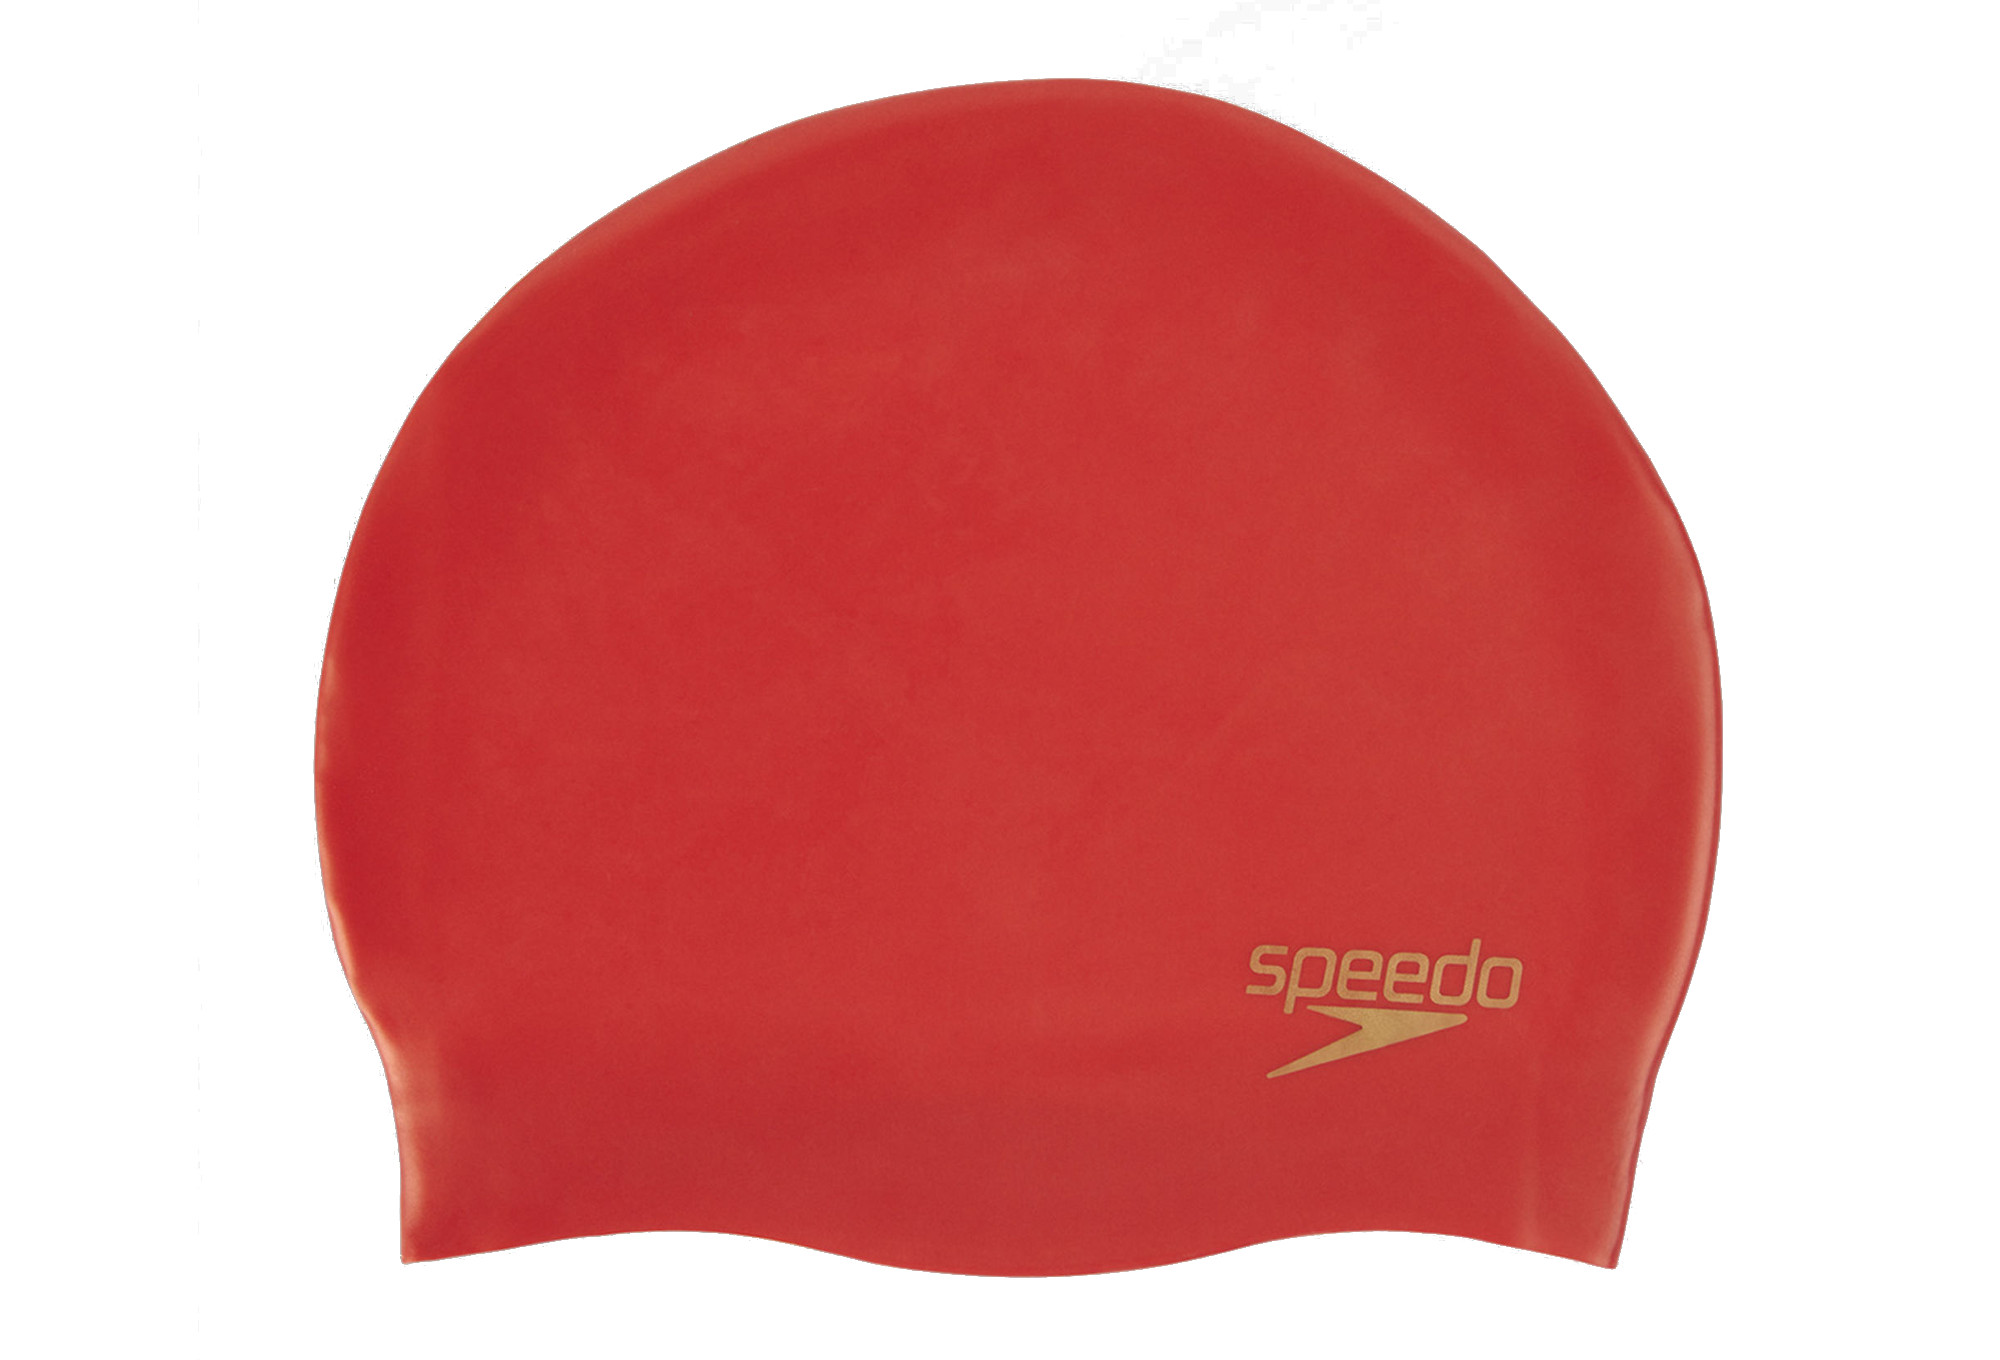 Moulded Silicon Speedo Moulded Red Moulded Cap Cap Silicon Speedo Red Speedo qzpLUGMSV